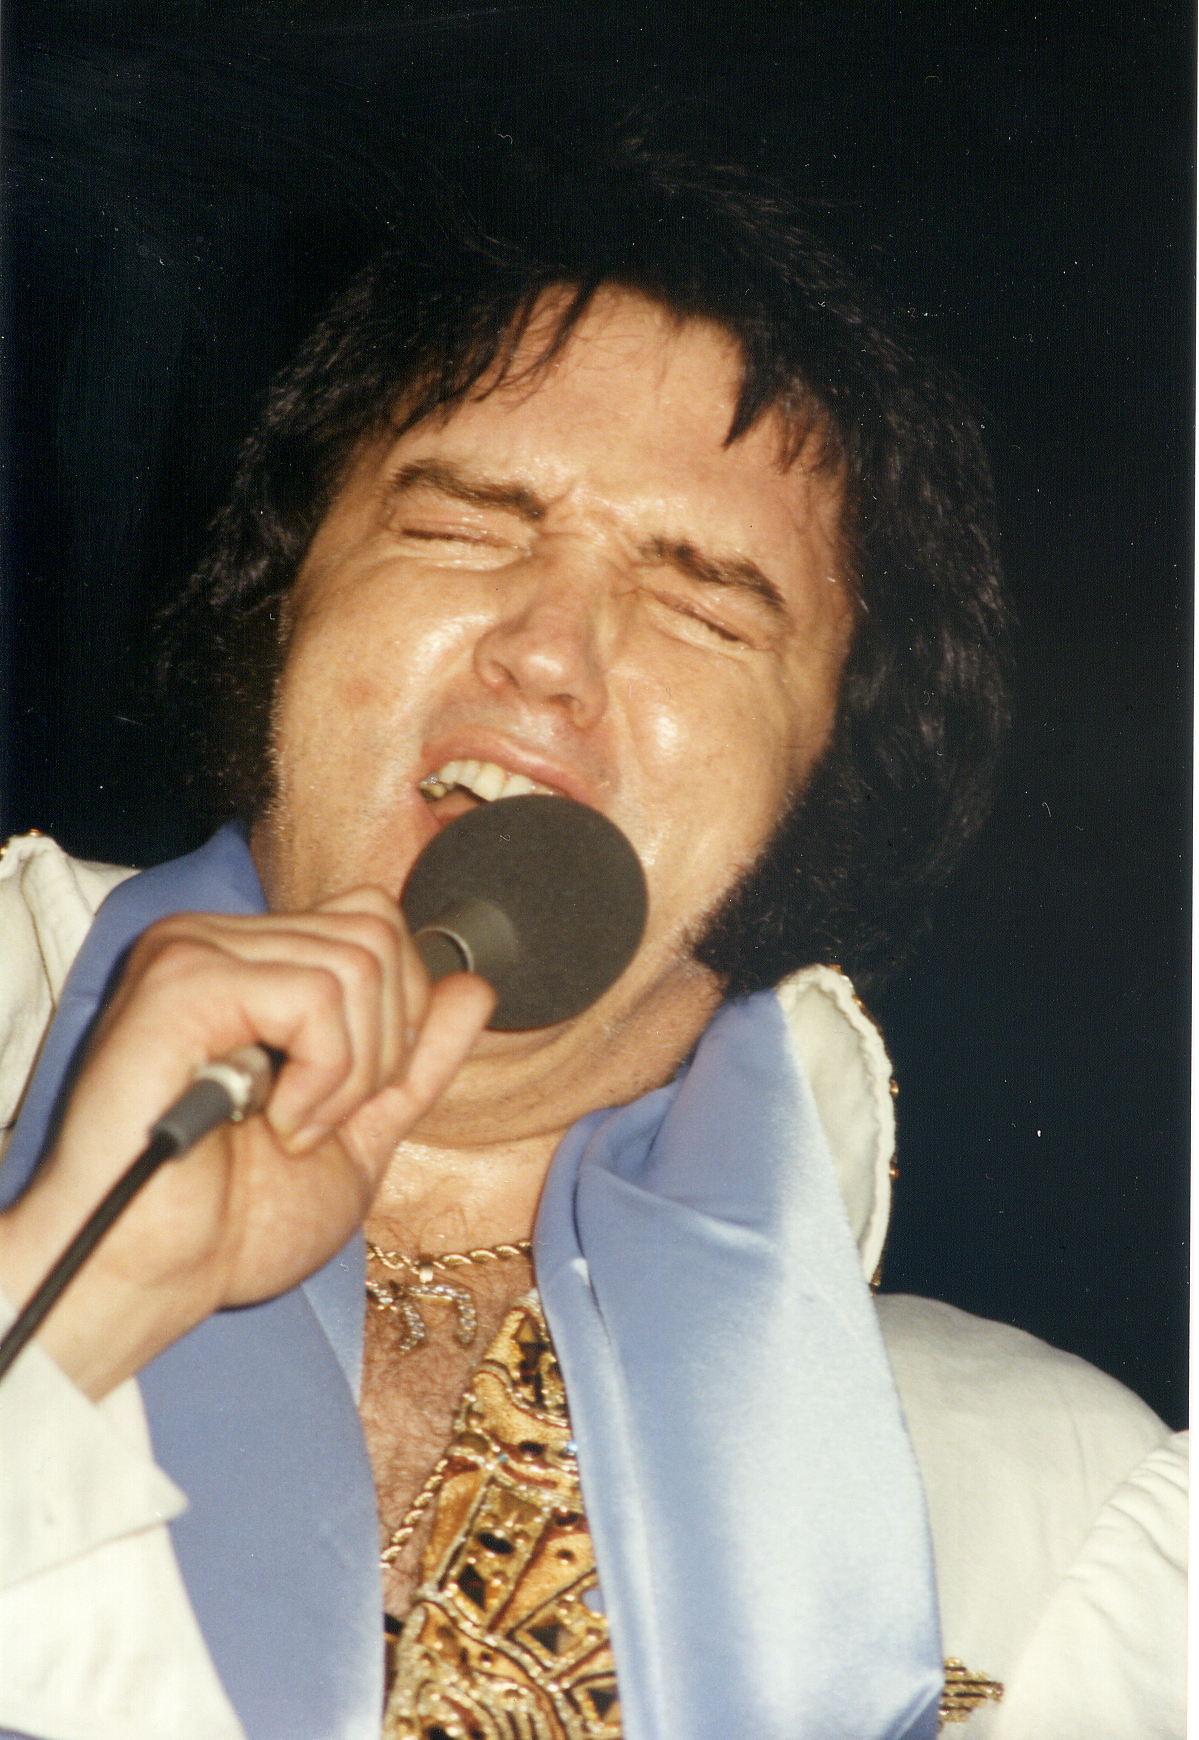 https://i1.wp.com/www.elvisconcerts.com/pictures/s77052205.jpg